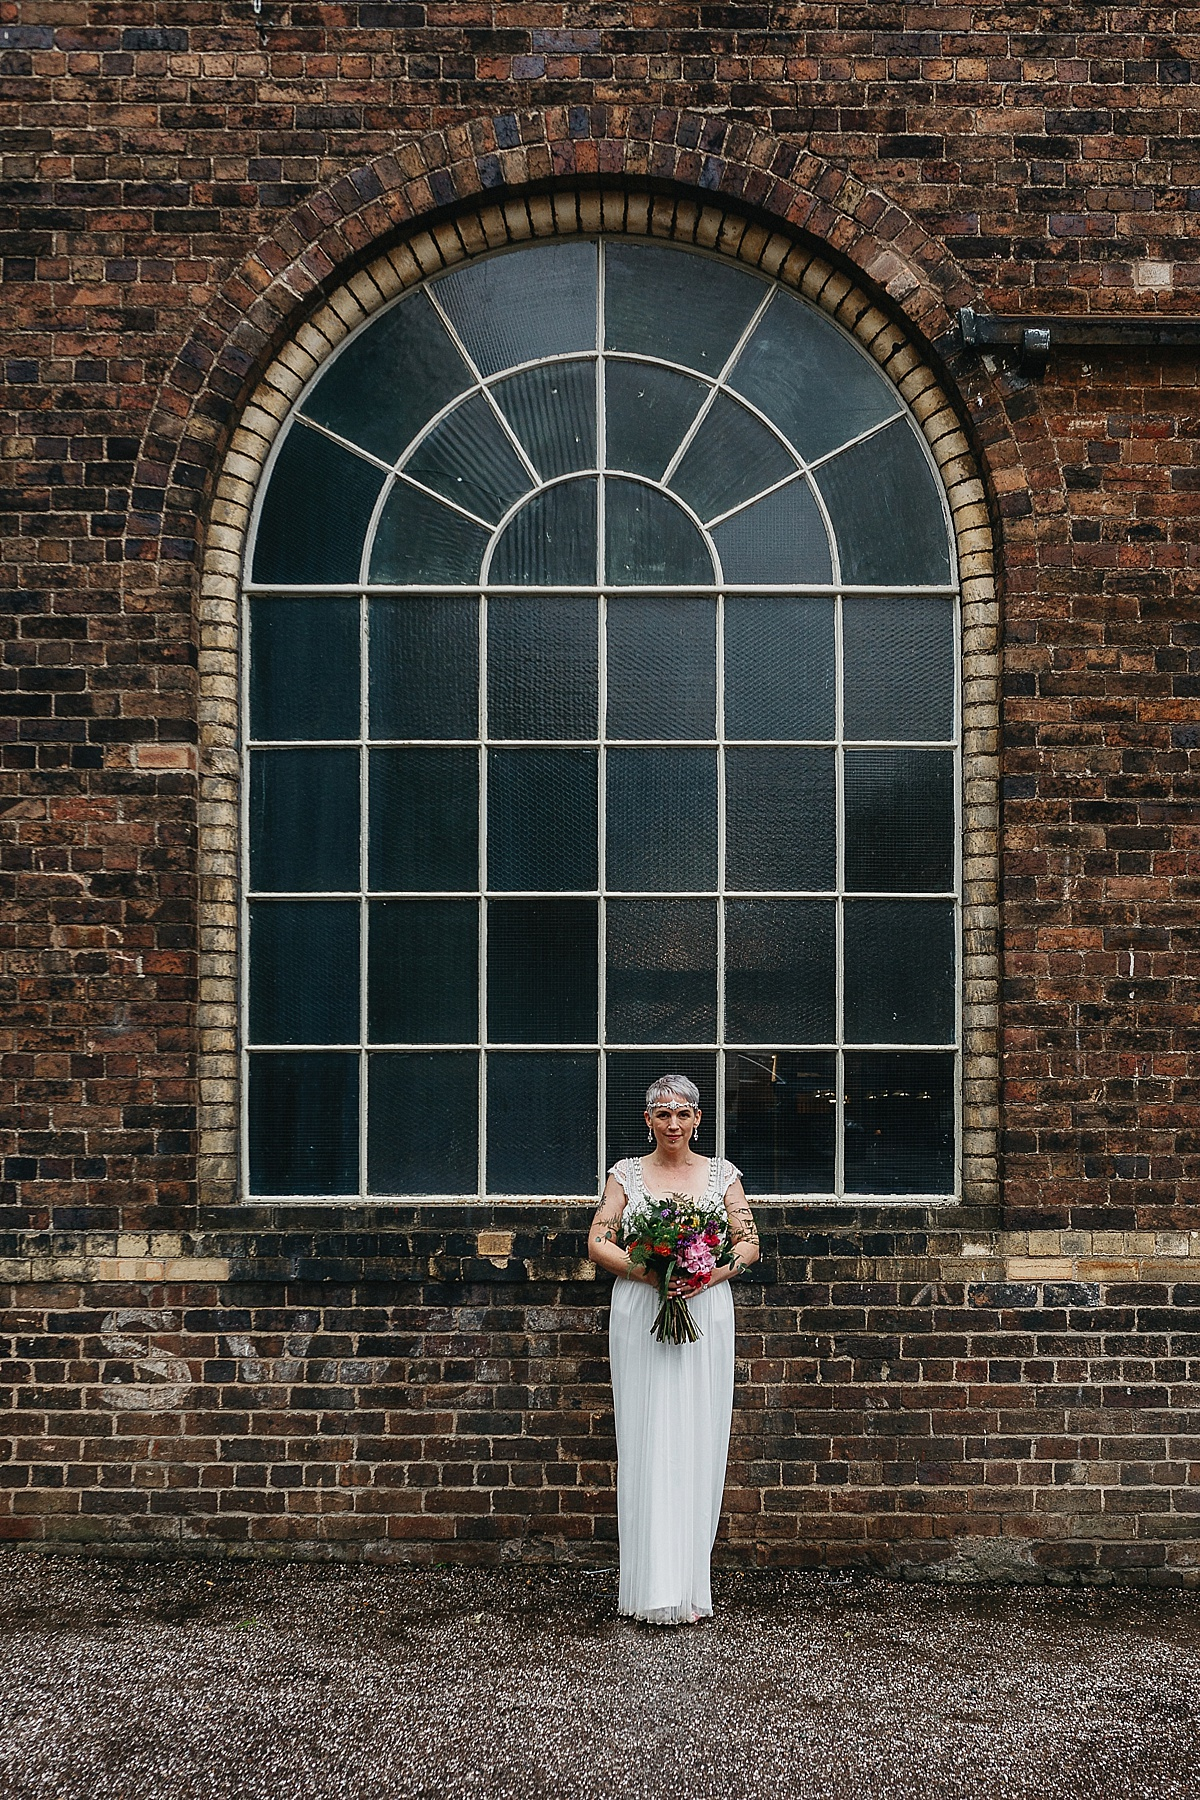 Indie Love Photography, Enginuity Museum Wedding, Shropshire_J+D-61